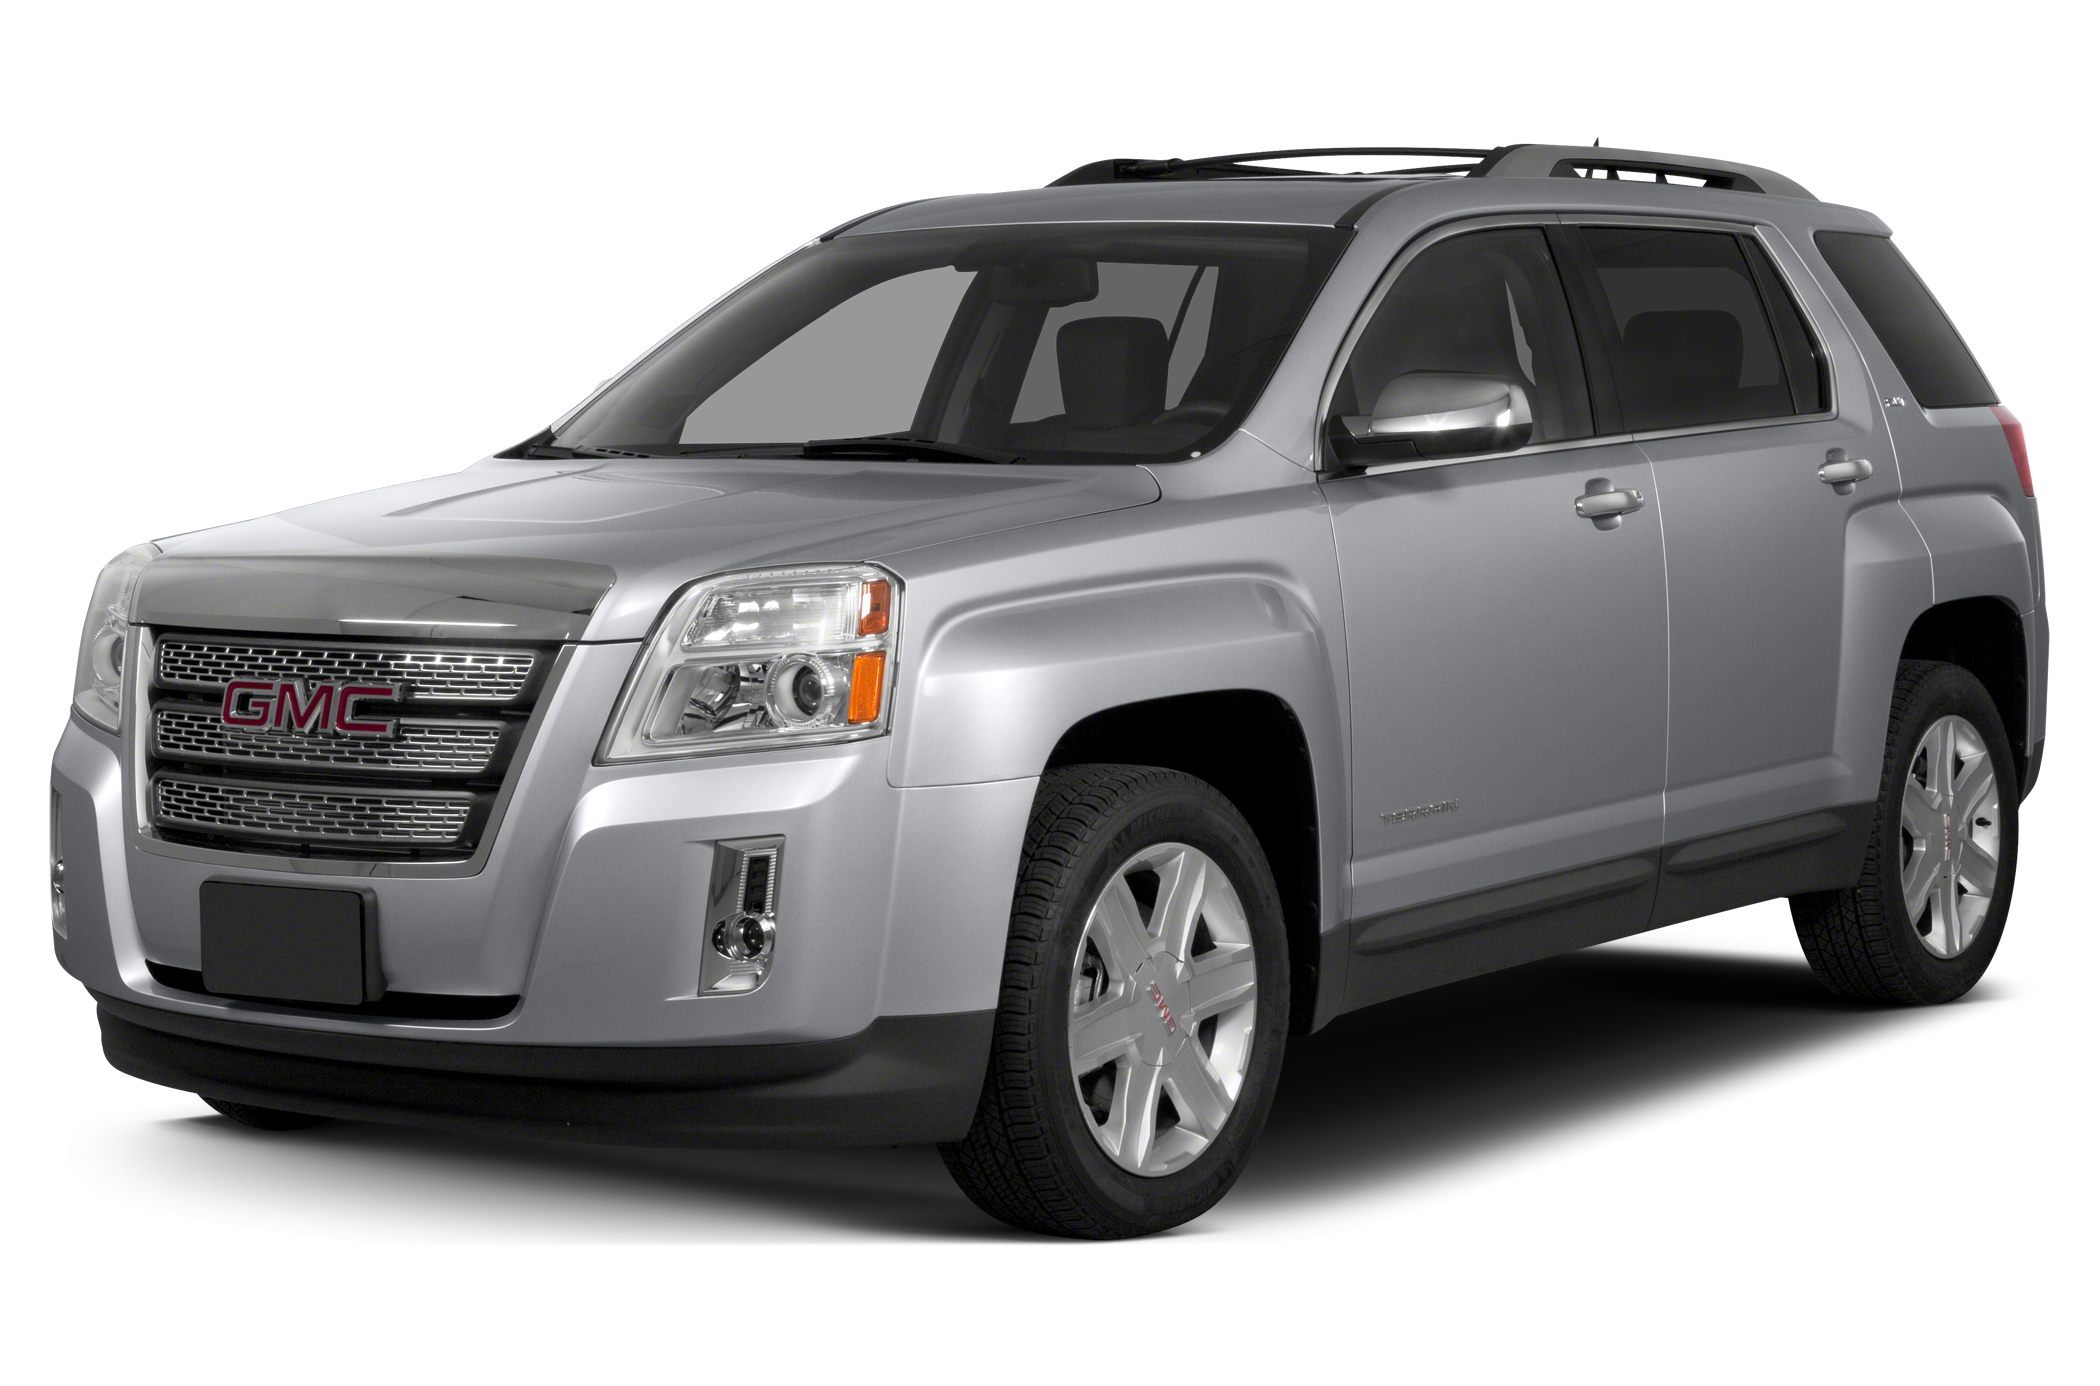 2015 GMC Terrain SLE-1 SUV for sale in Columbia for $27,485 with 2 miles.